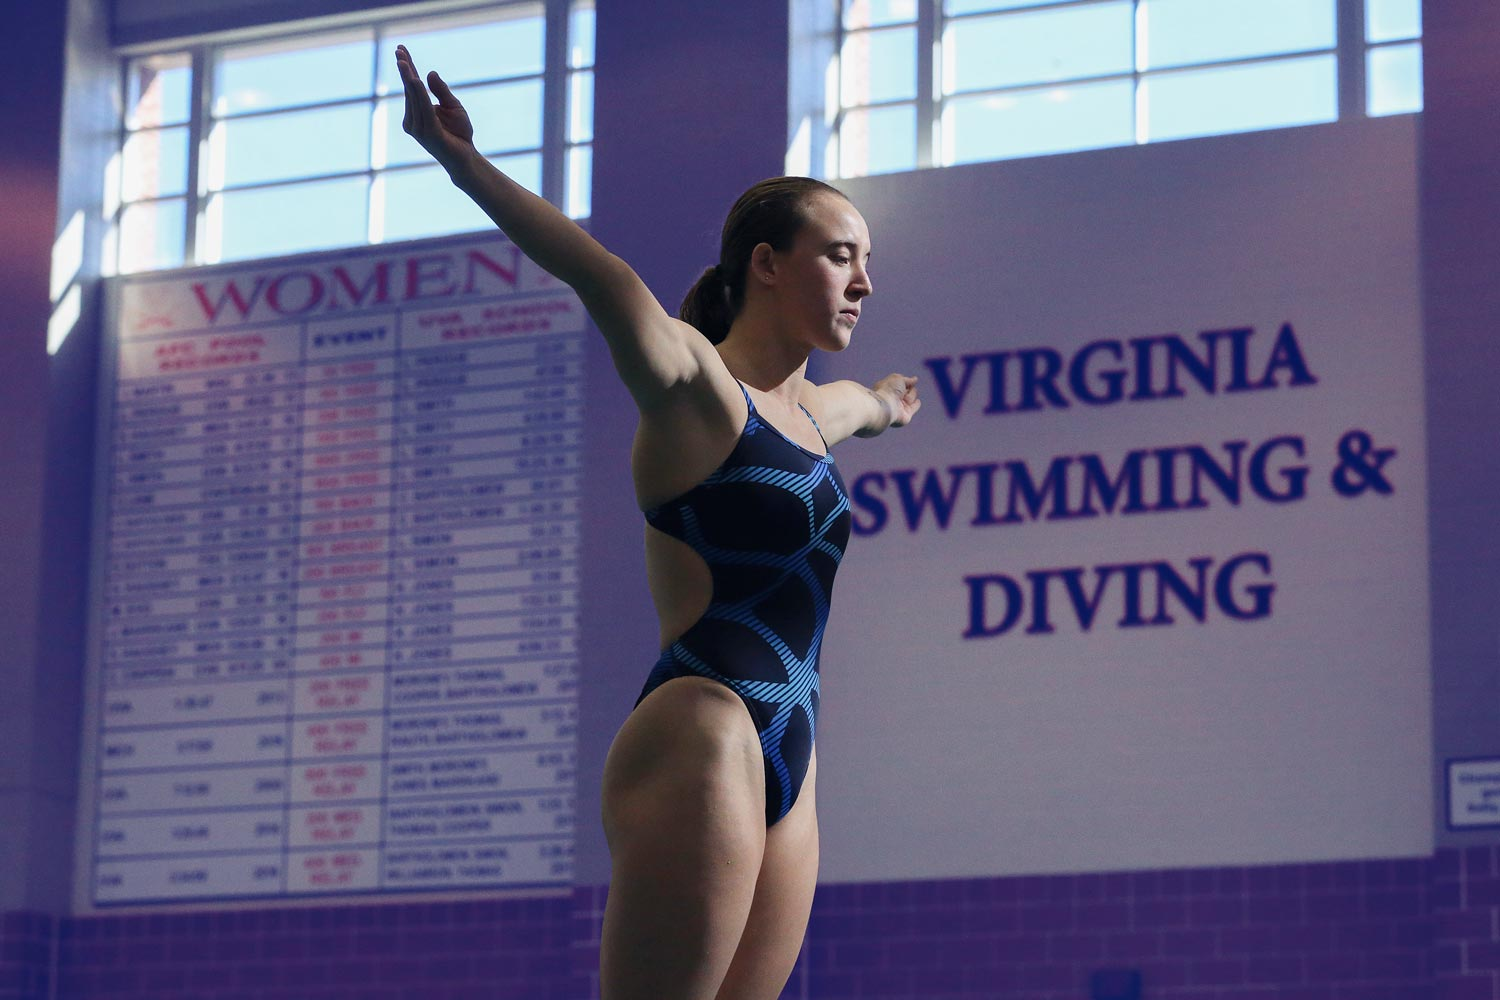 Third-year student Kylie Towbin broke UVA's diving record in January at a meet with the University of North Carolina.